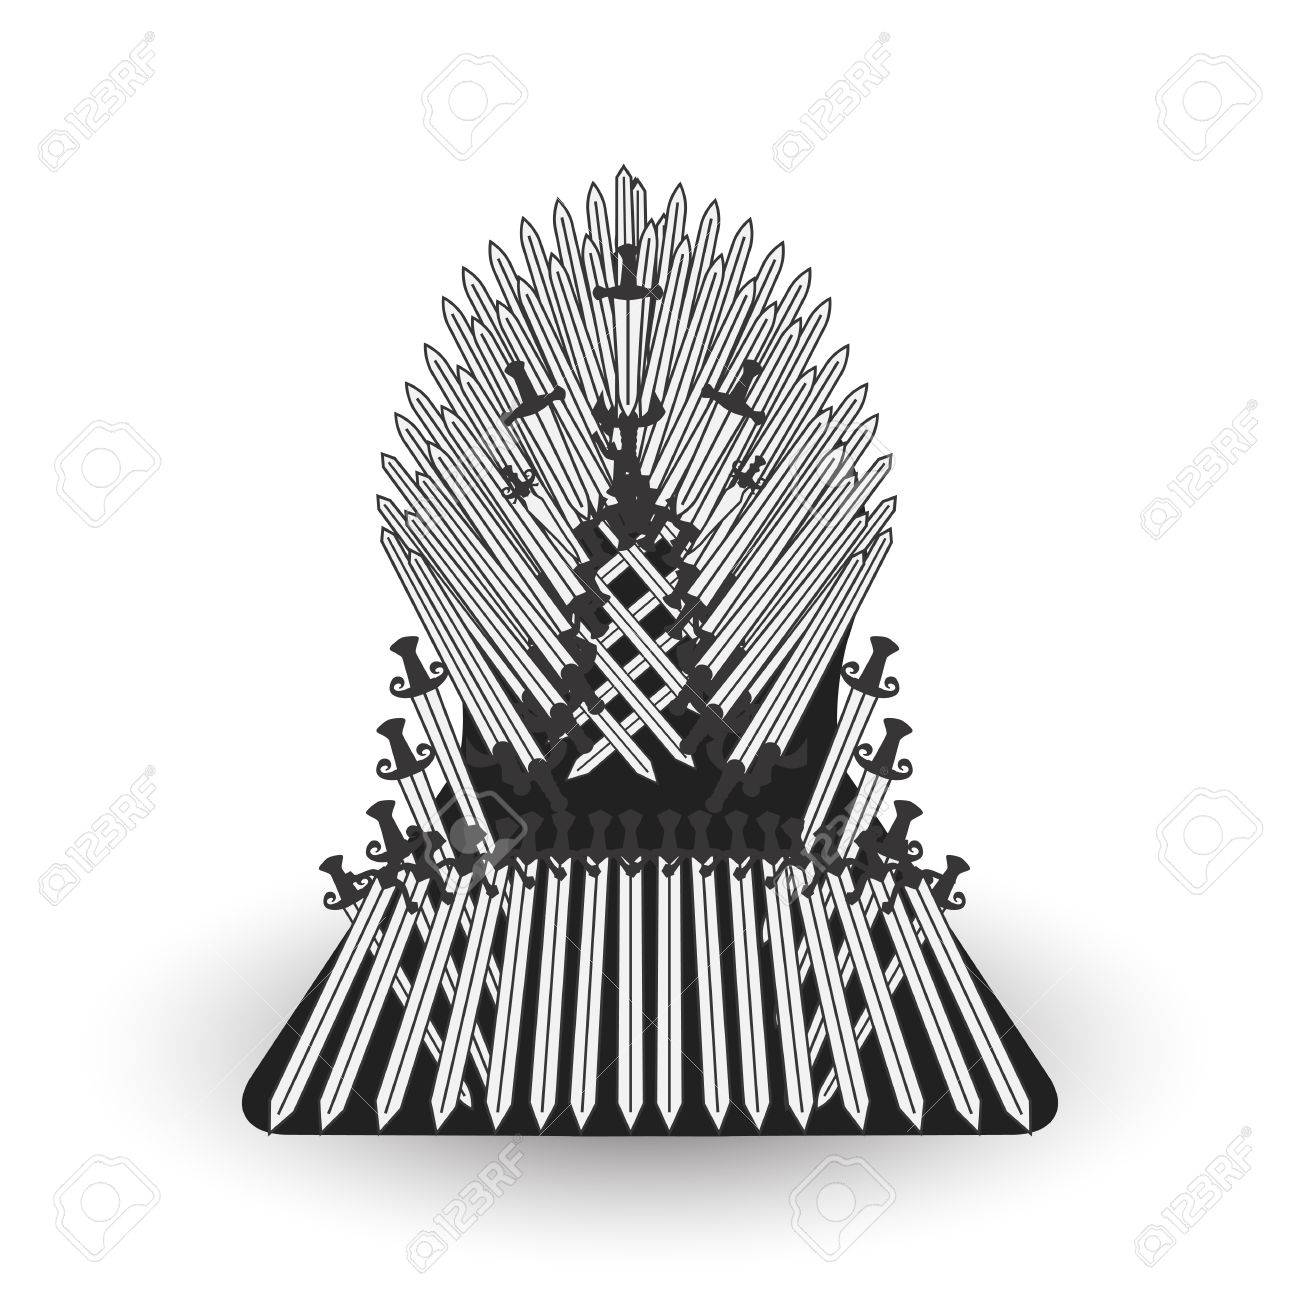 Iron Throne For Computer Games Design Vector Illustration Royalty